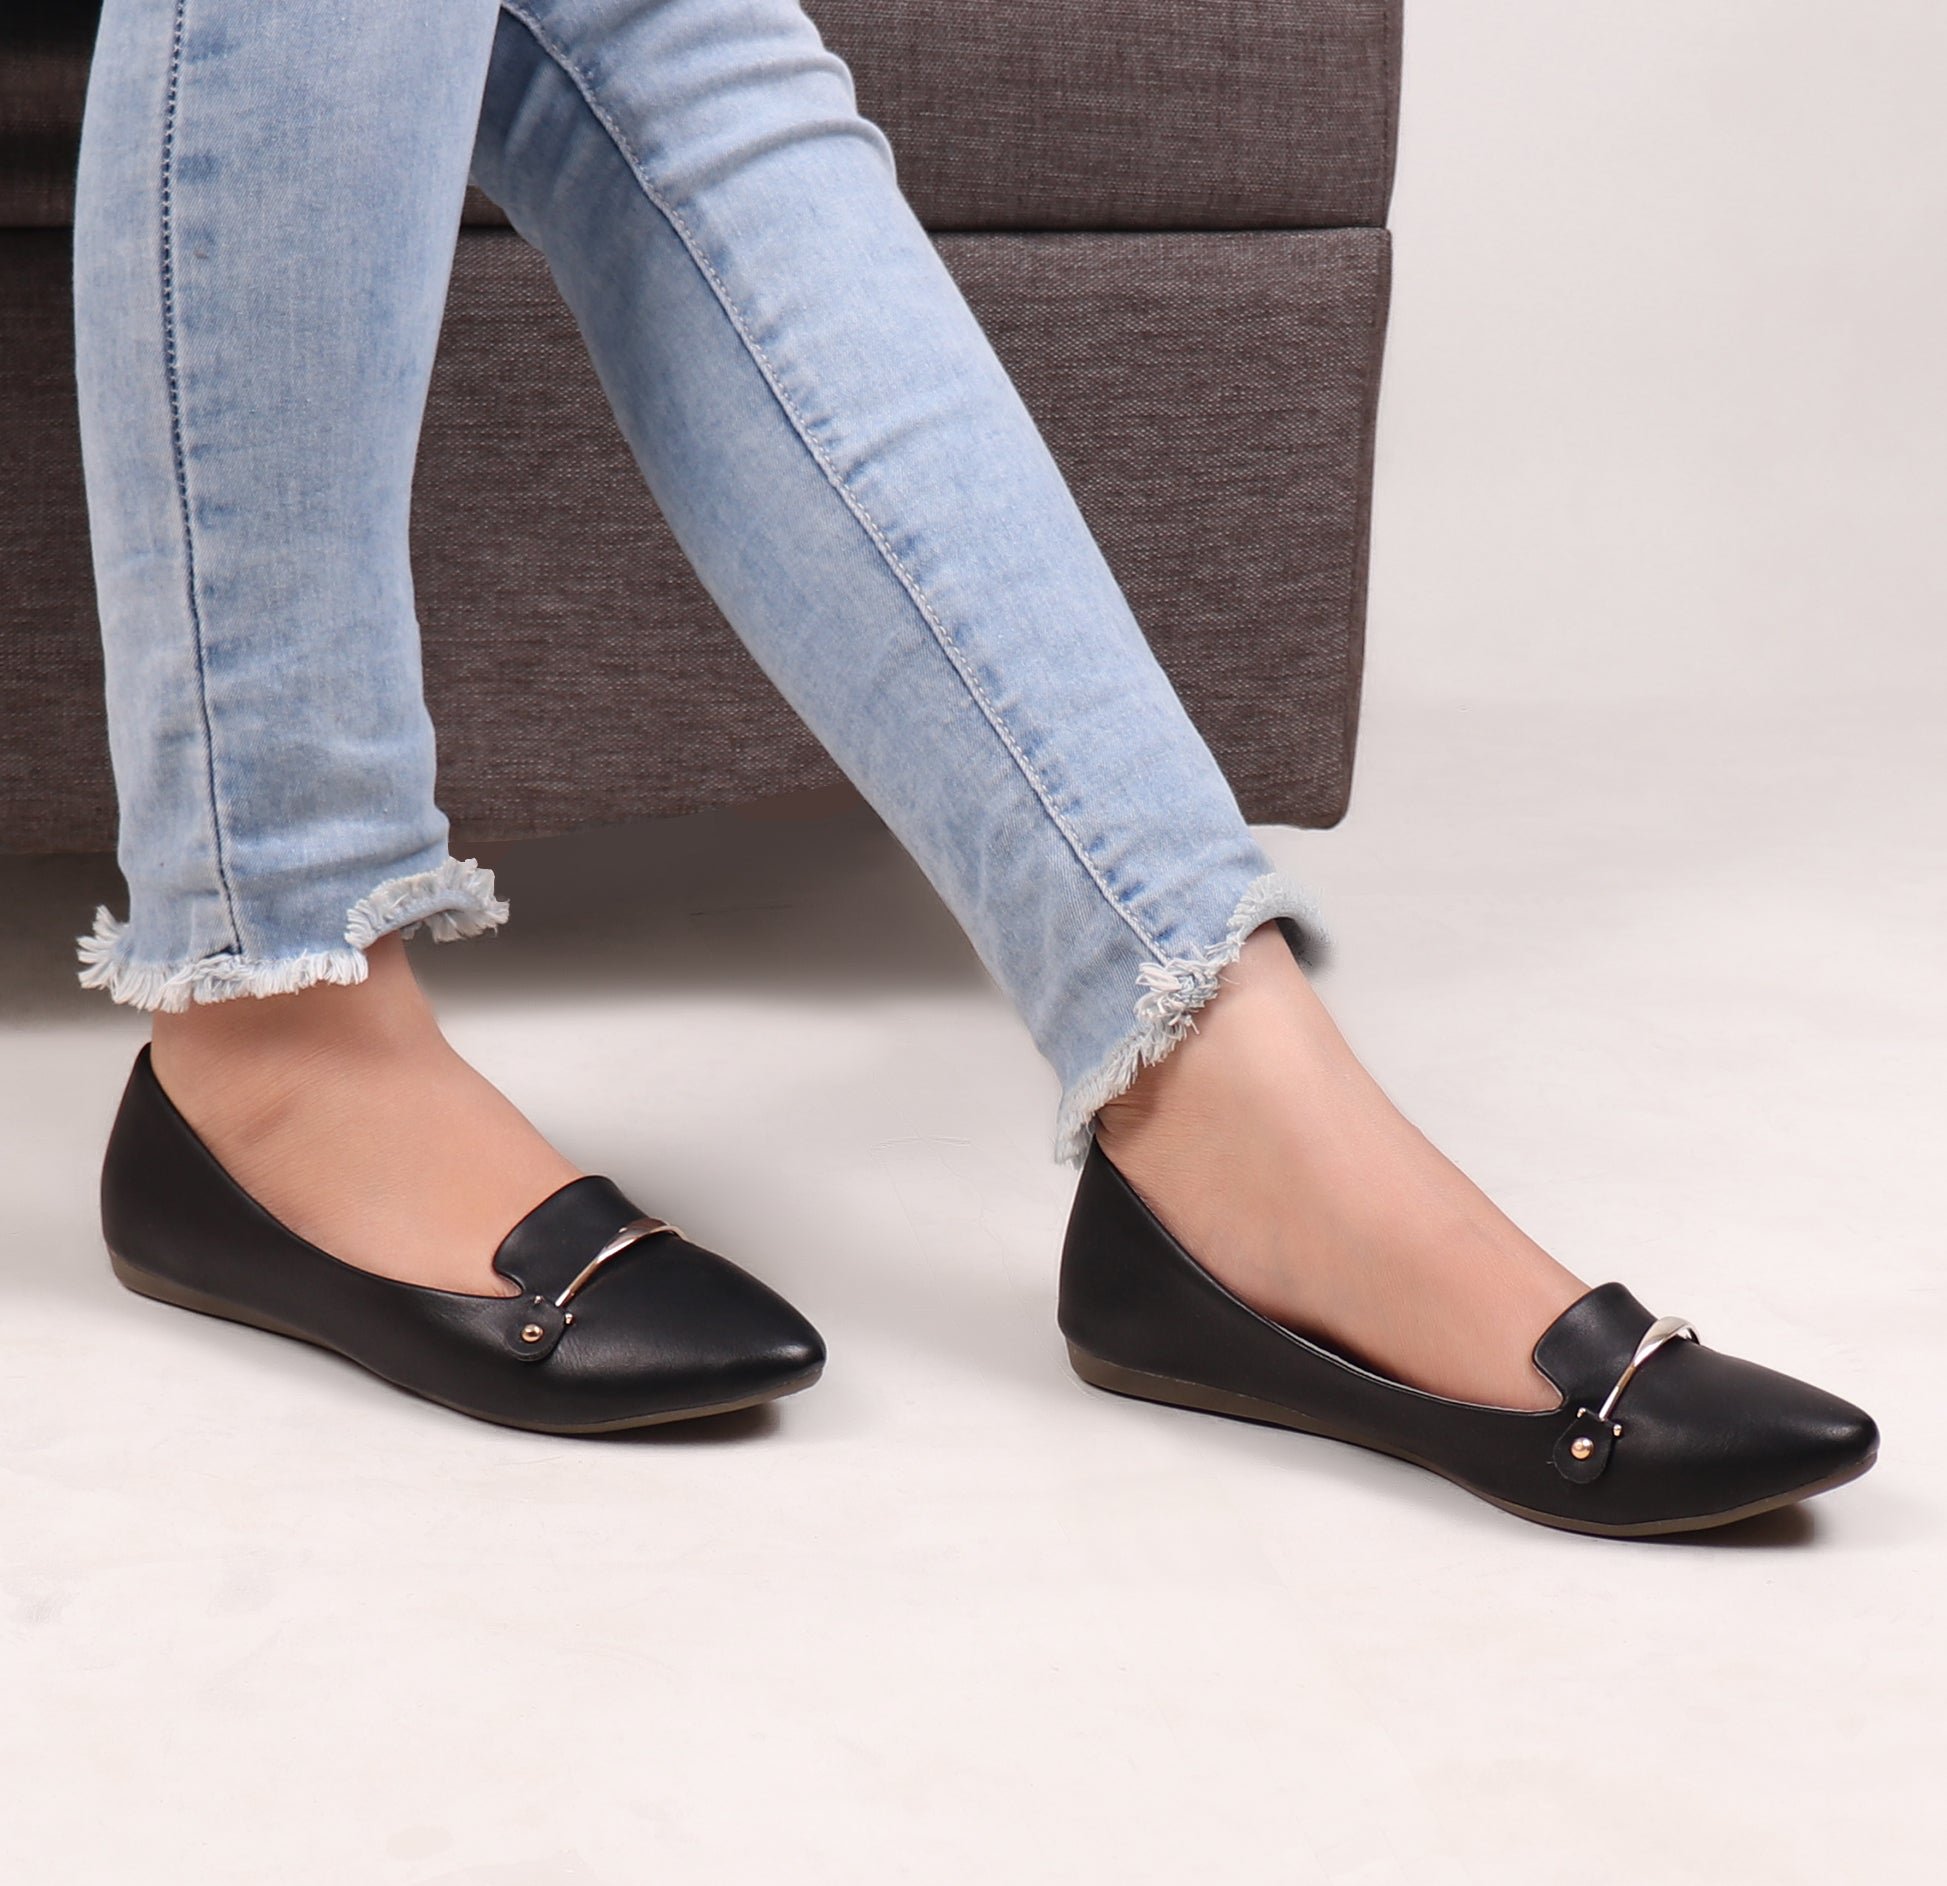 Foot Wear,Riveted Golden Plate Flats in Black - Cippele Multi Store